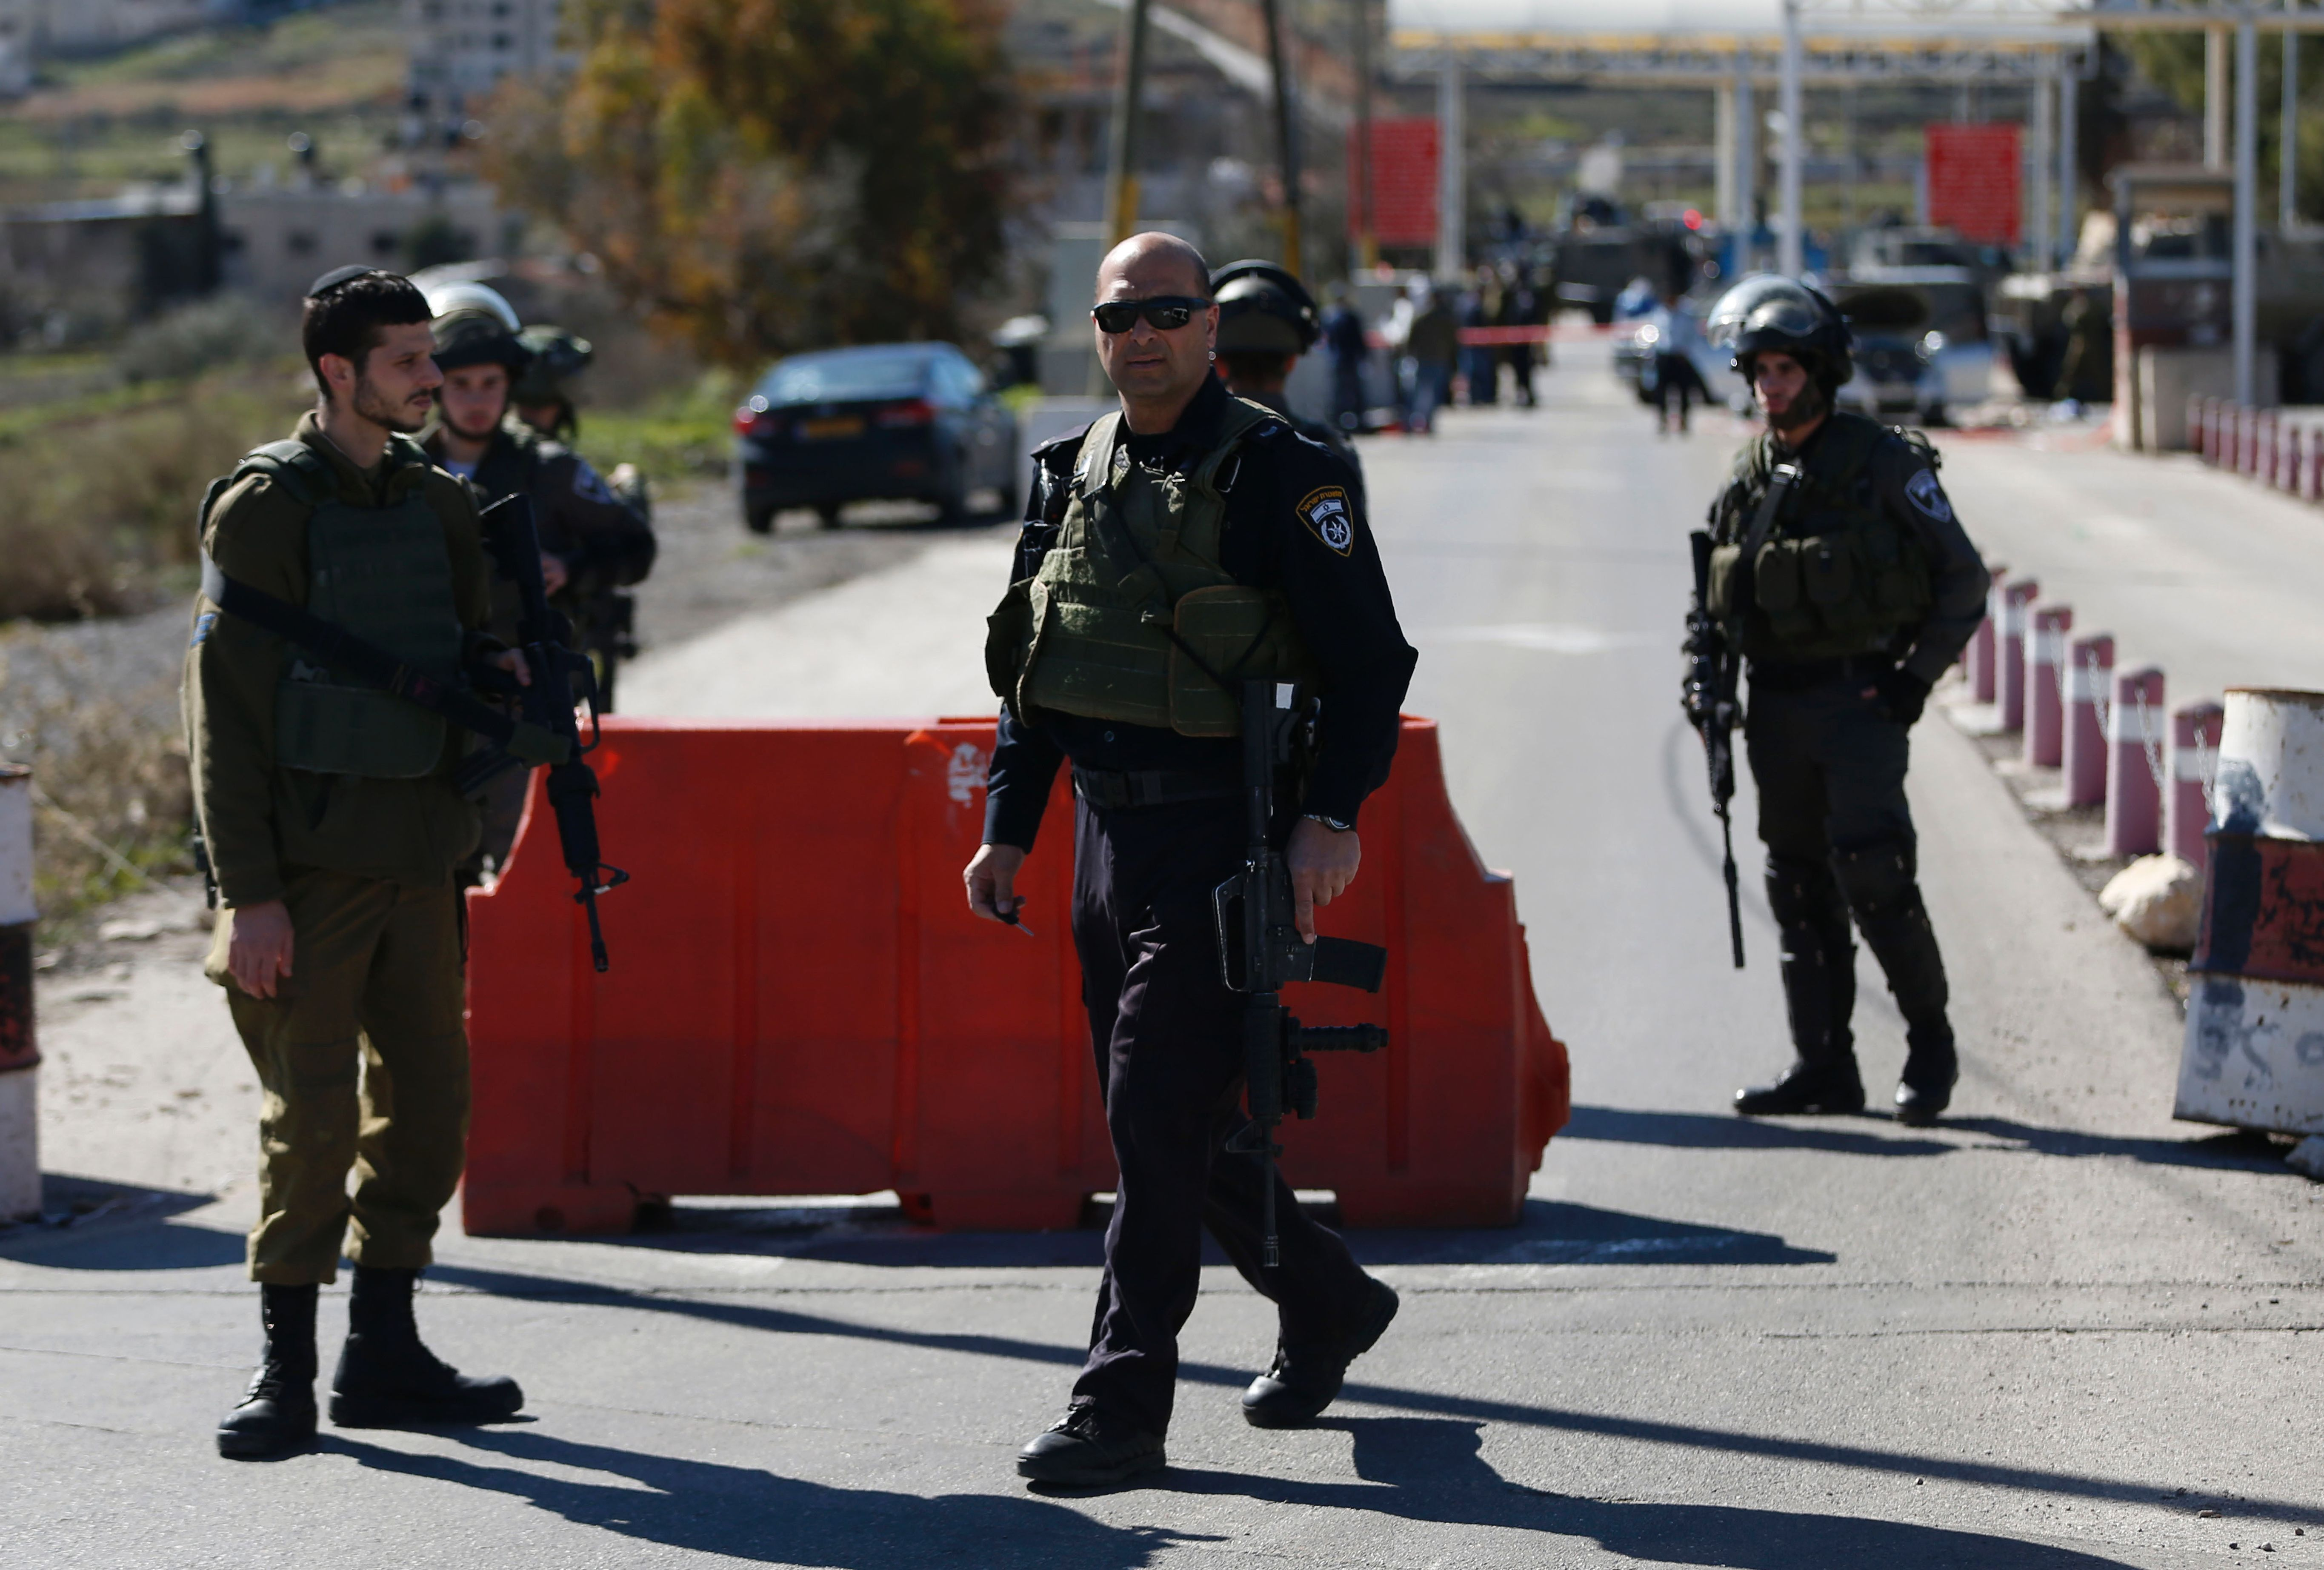 Israeli security forces secure the scene of a reported Palestinian shooting attack at a checkpoint near the Beit El settlement, close to West Bank city of Ramallah, on January 31, 2016.